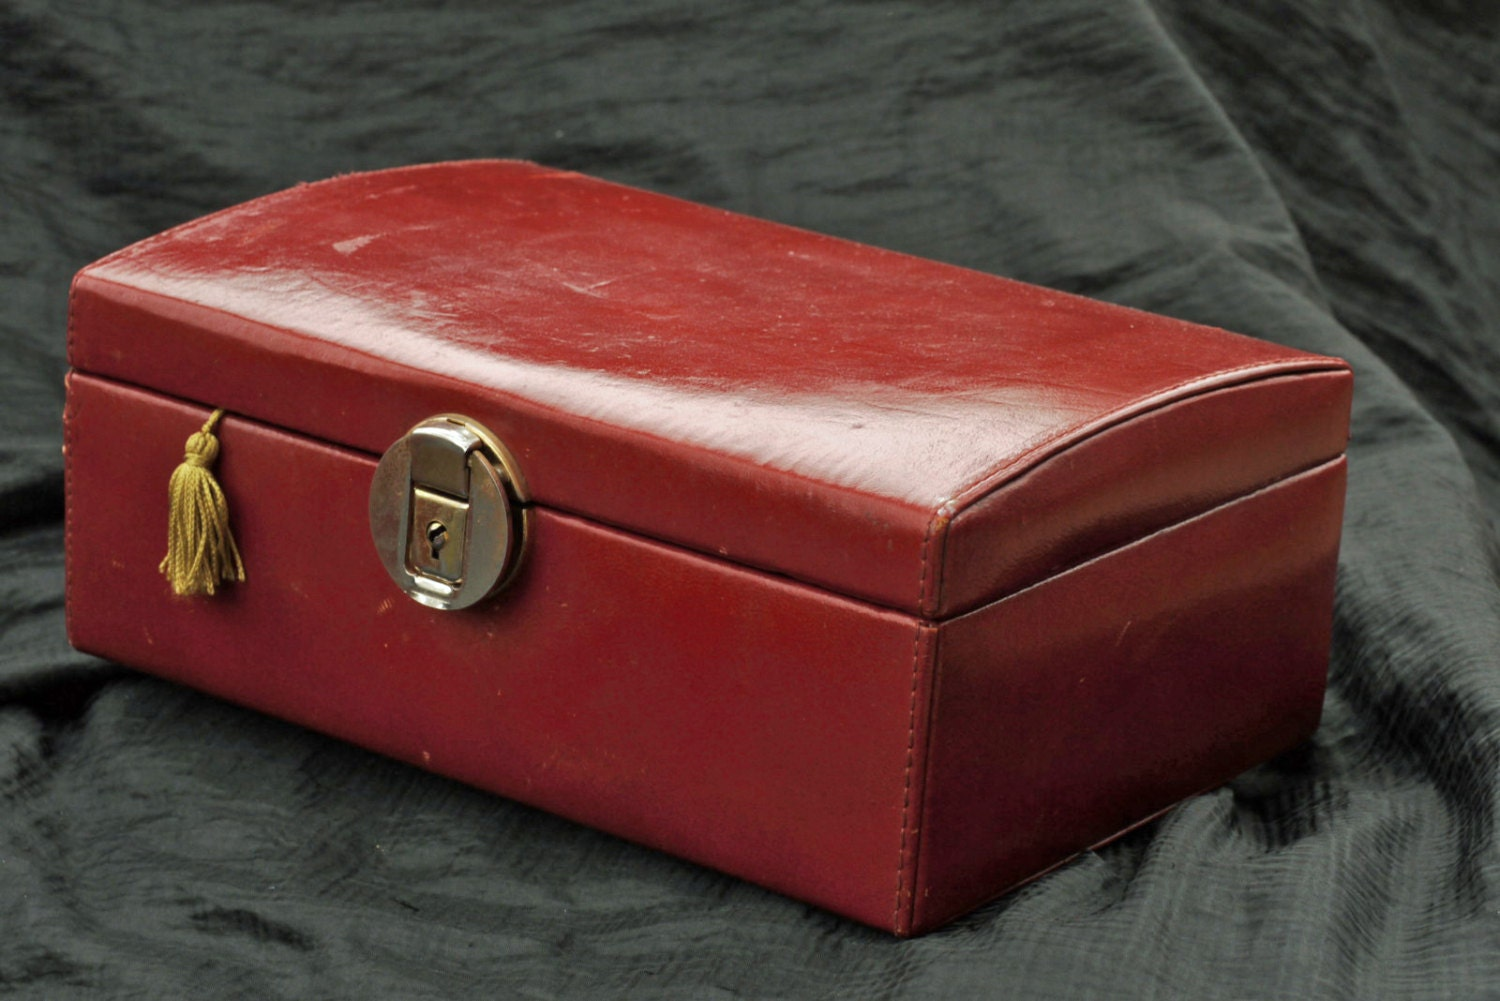 Vintage red leather jewelry box with original key for Jewelry box with key